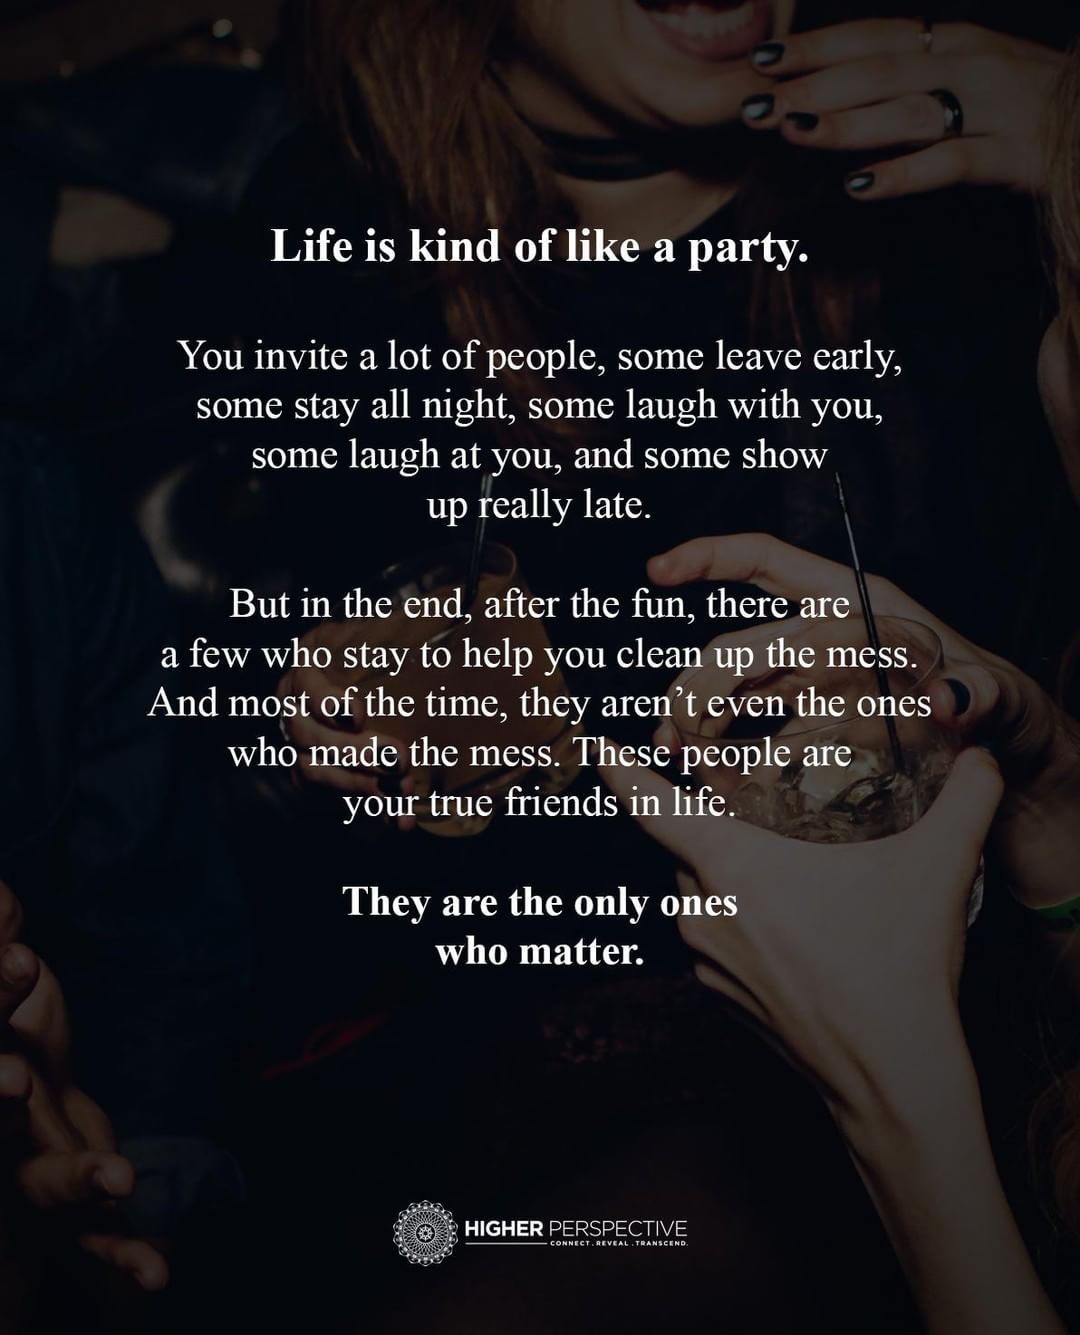 These People Are Your True Friends In Life True Friends Quotes Friends Quotes True Friends